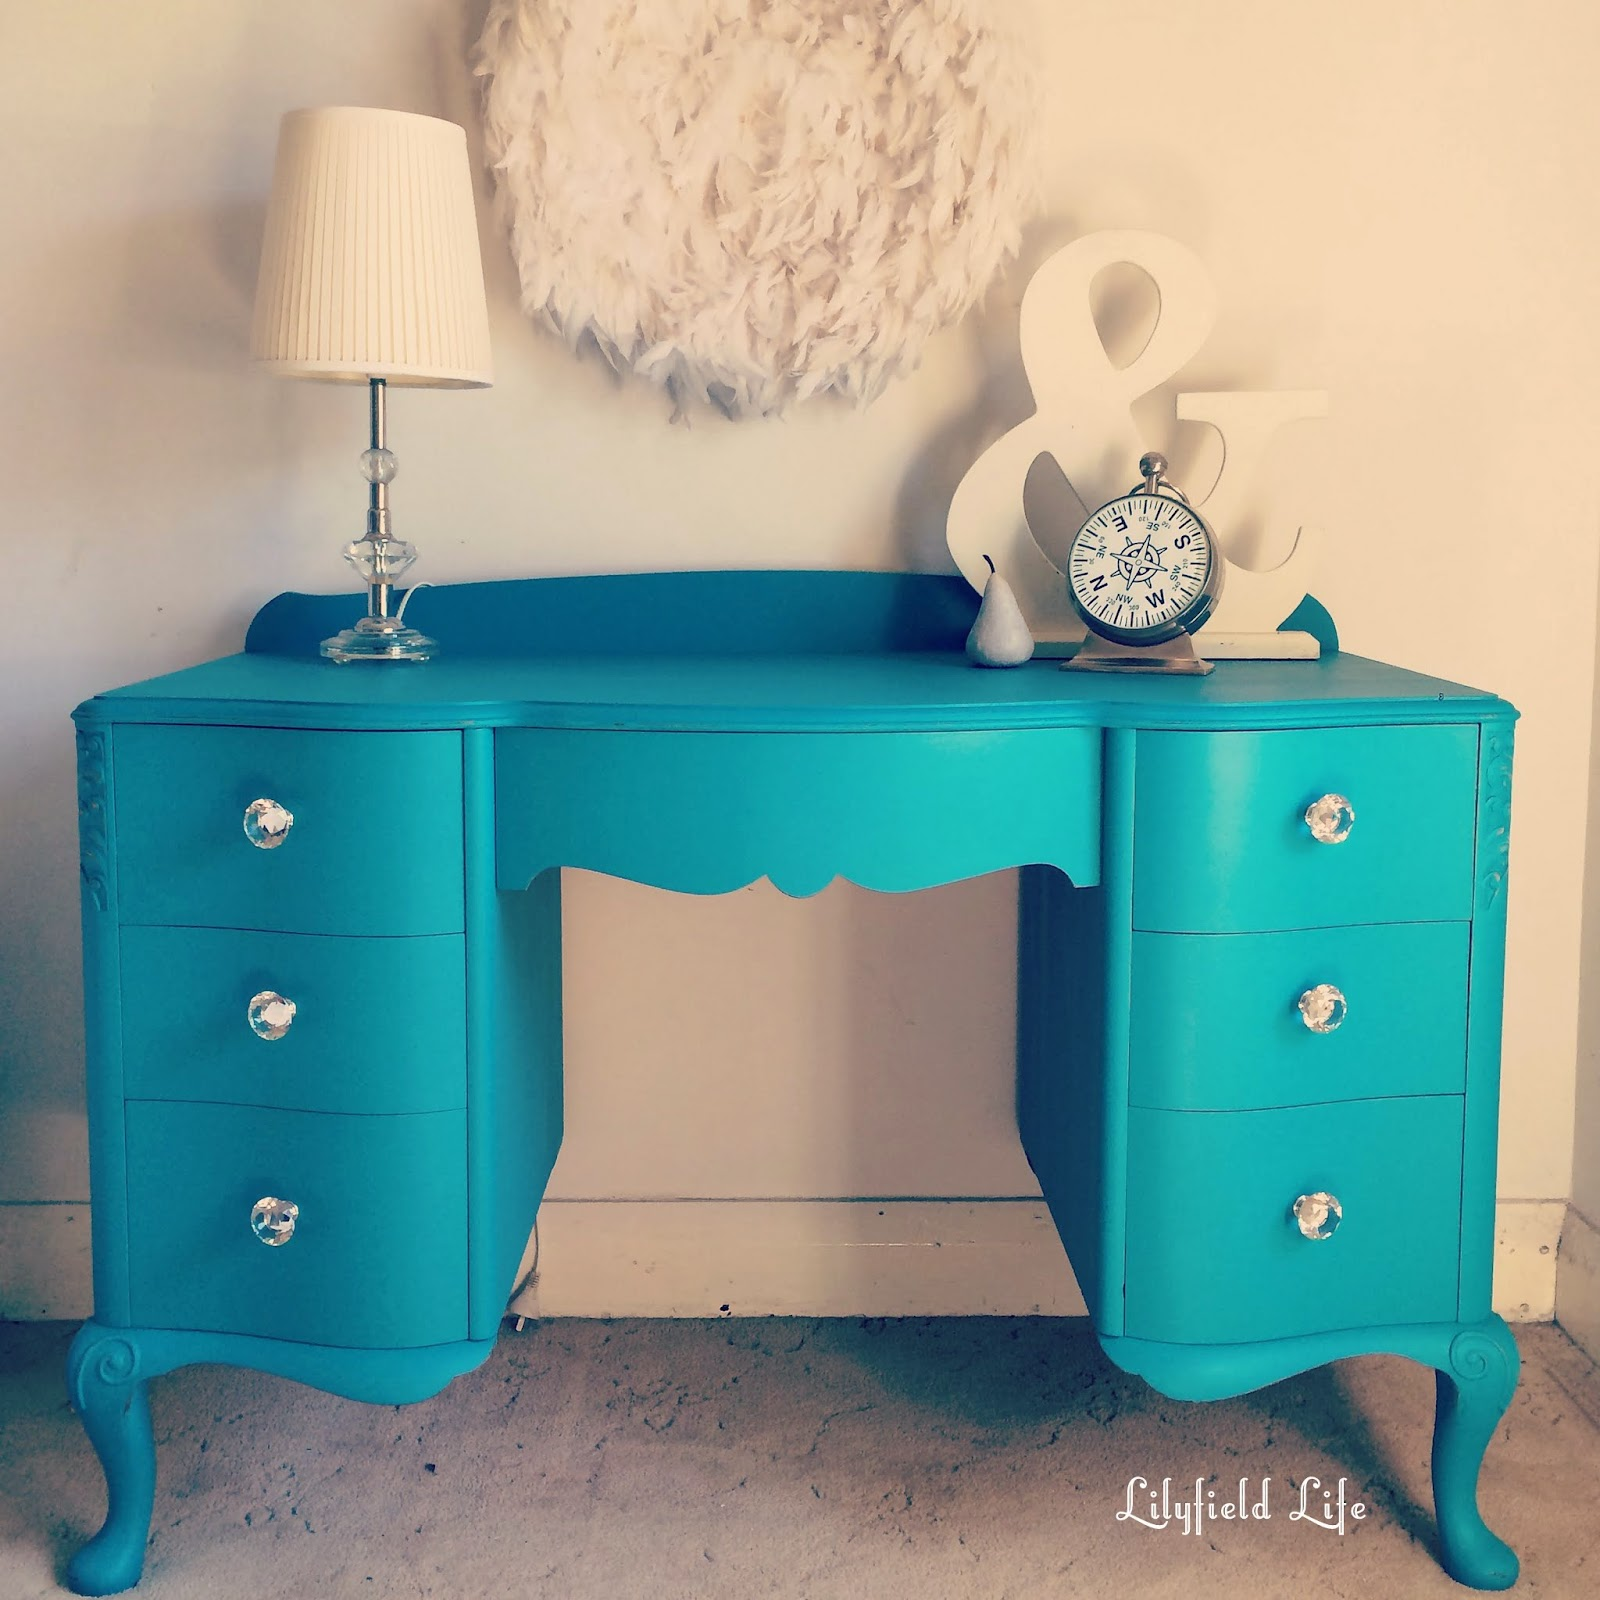 Lilyfield Life: Two Turquoise Pieces